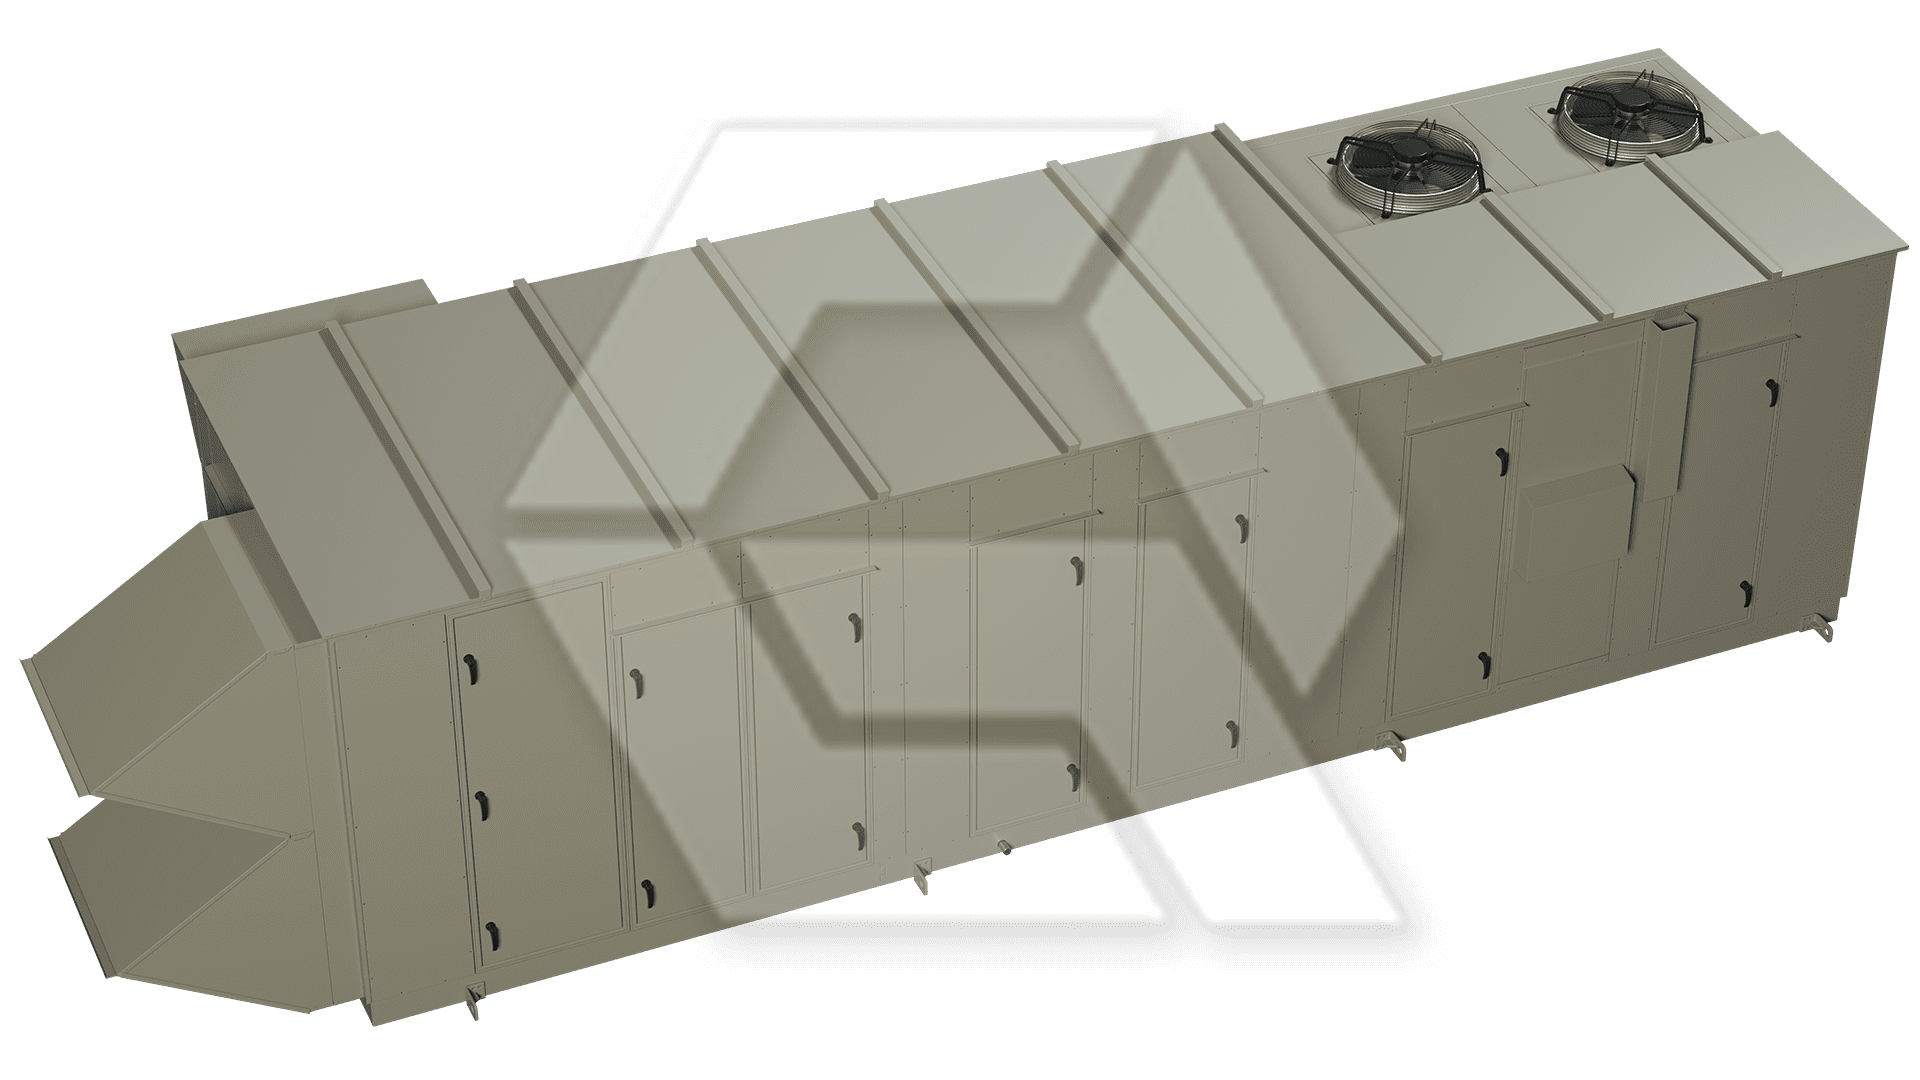 Innovent AHU 8081286 Closed View